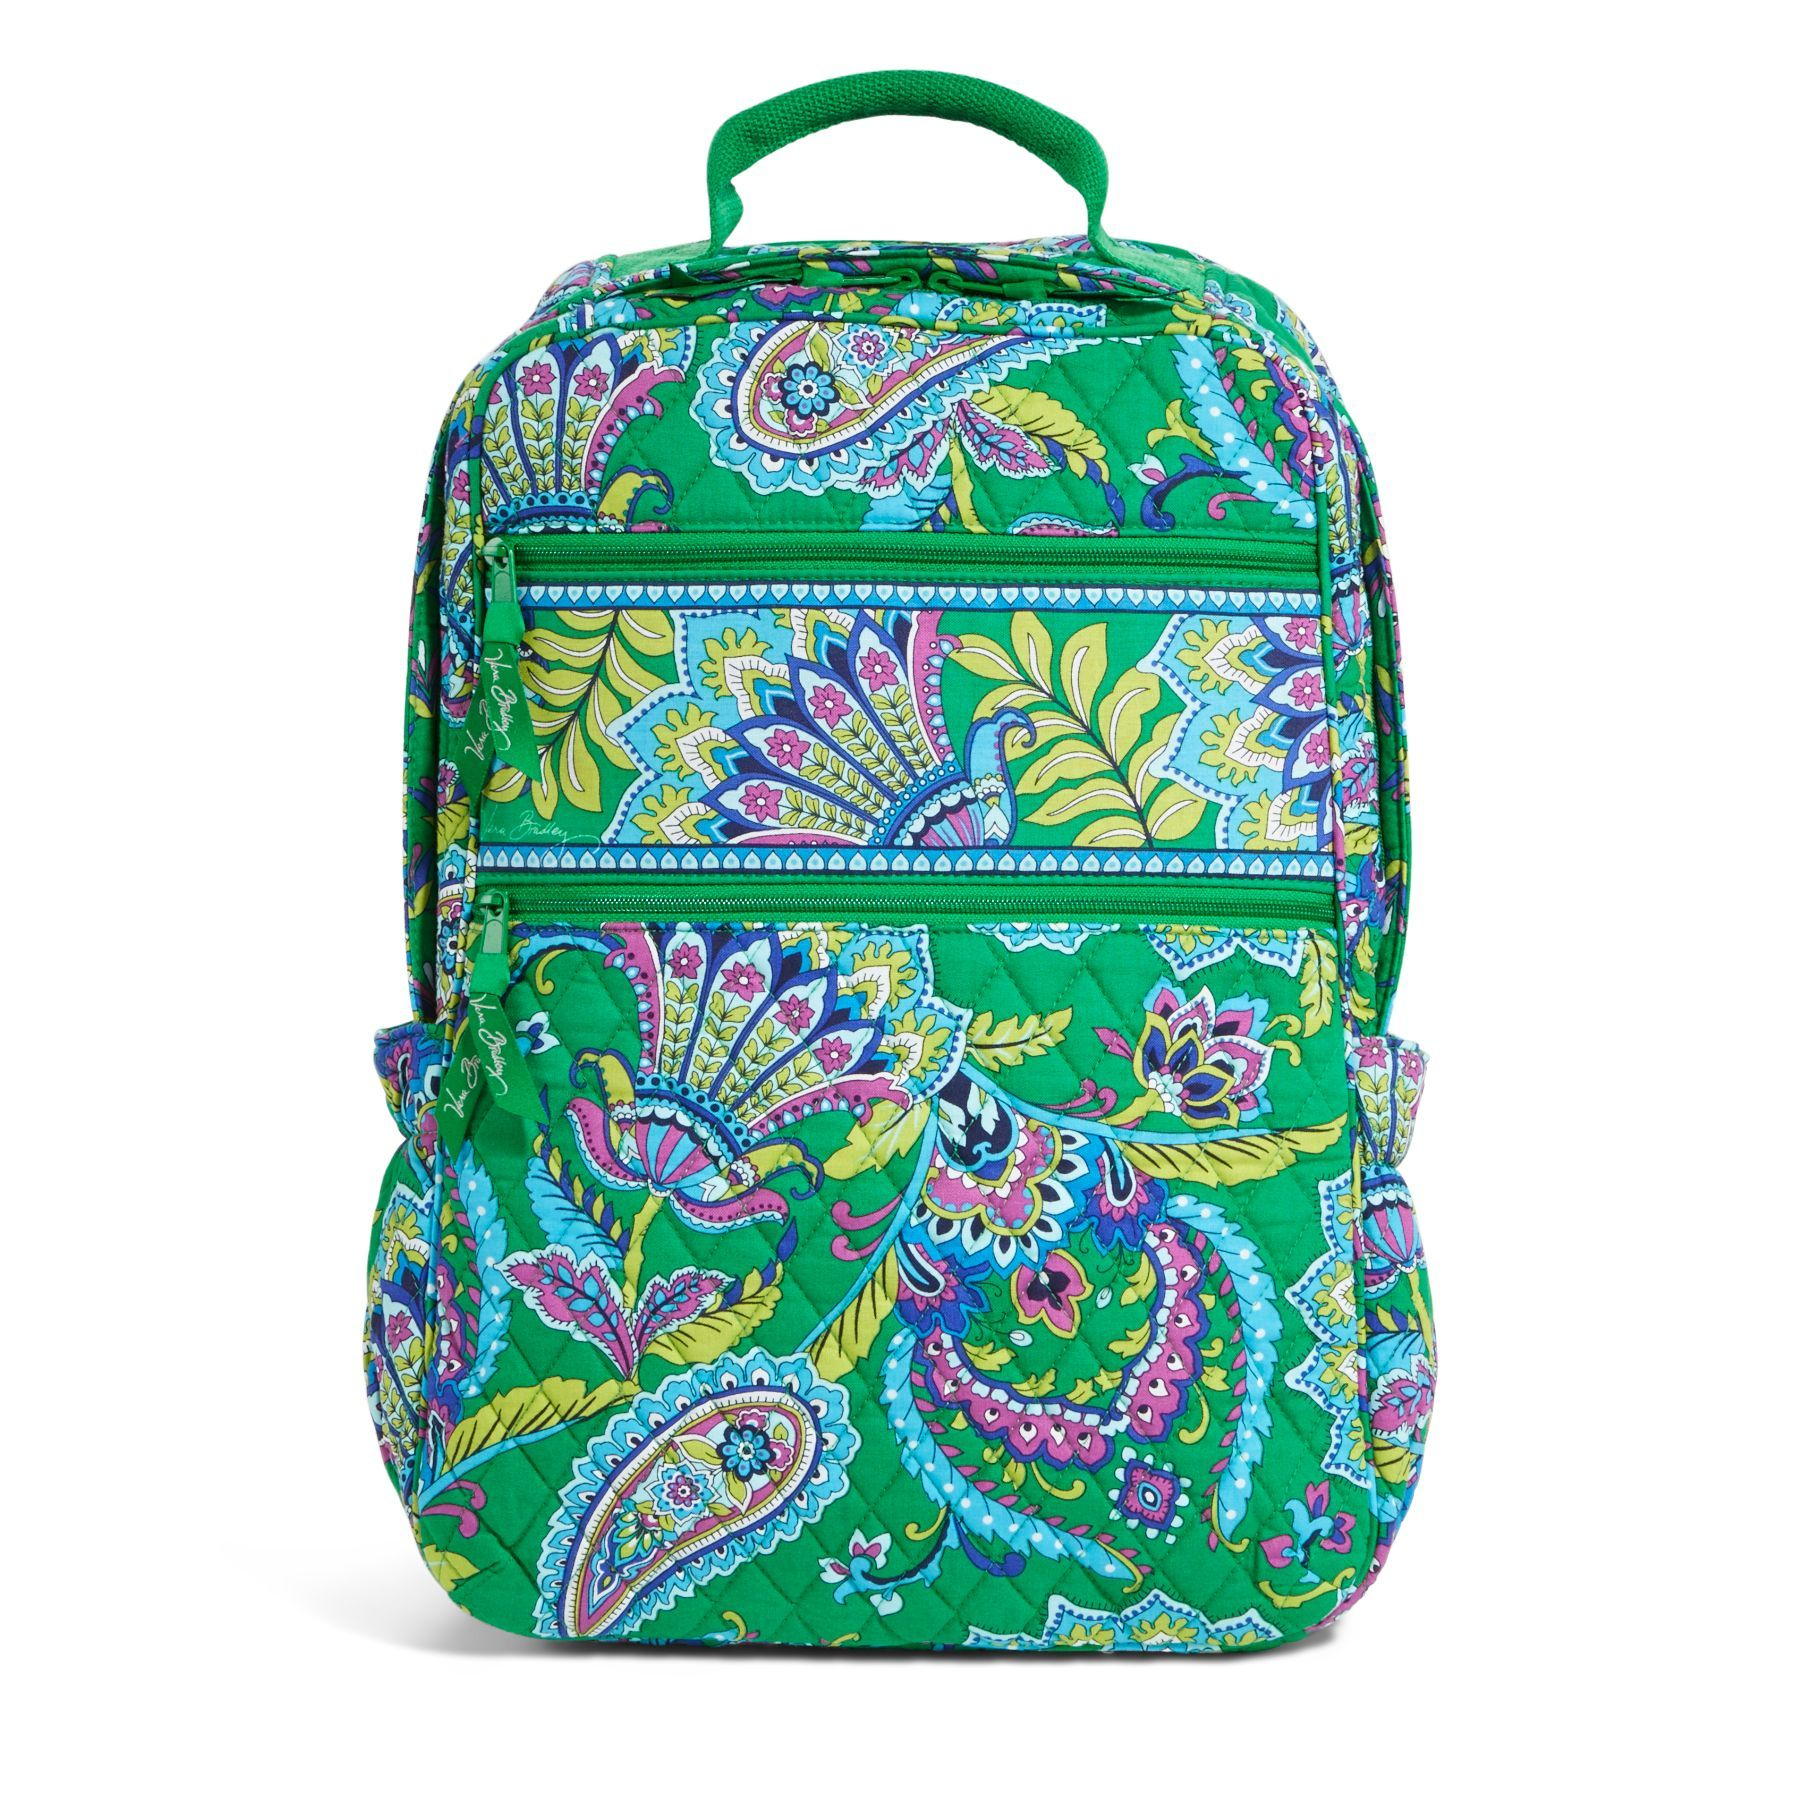 Tech Backpack In Emerald Paisley 108 I Vera Bradley